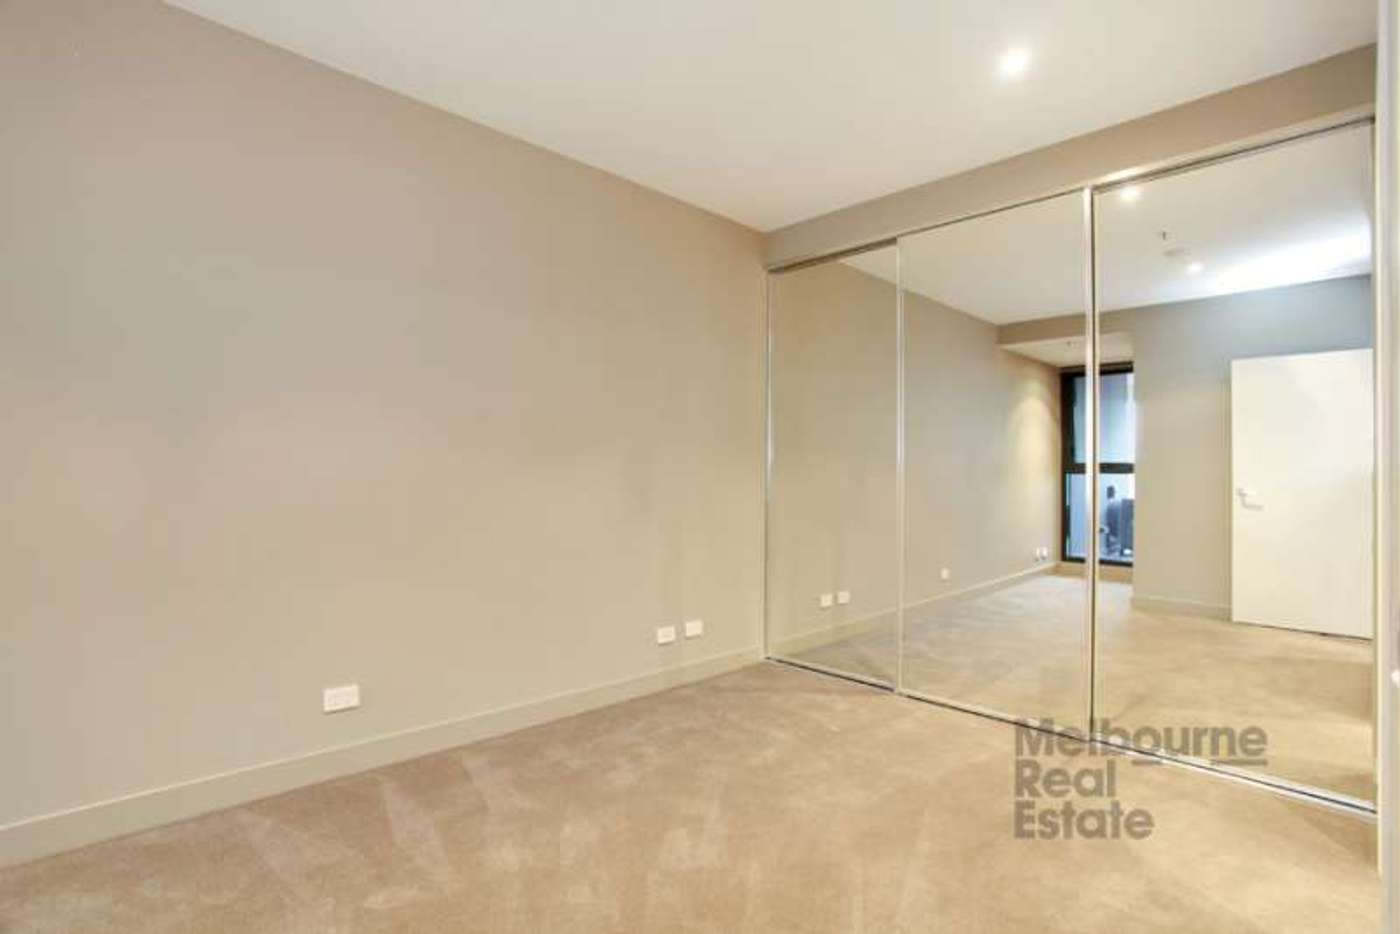 Seventh view of Homely apartment listing, 2205/38 Albert Road, South Melbourne VIC 3205